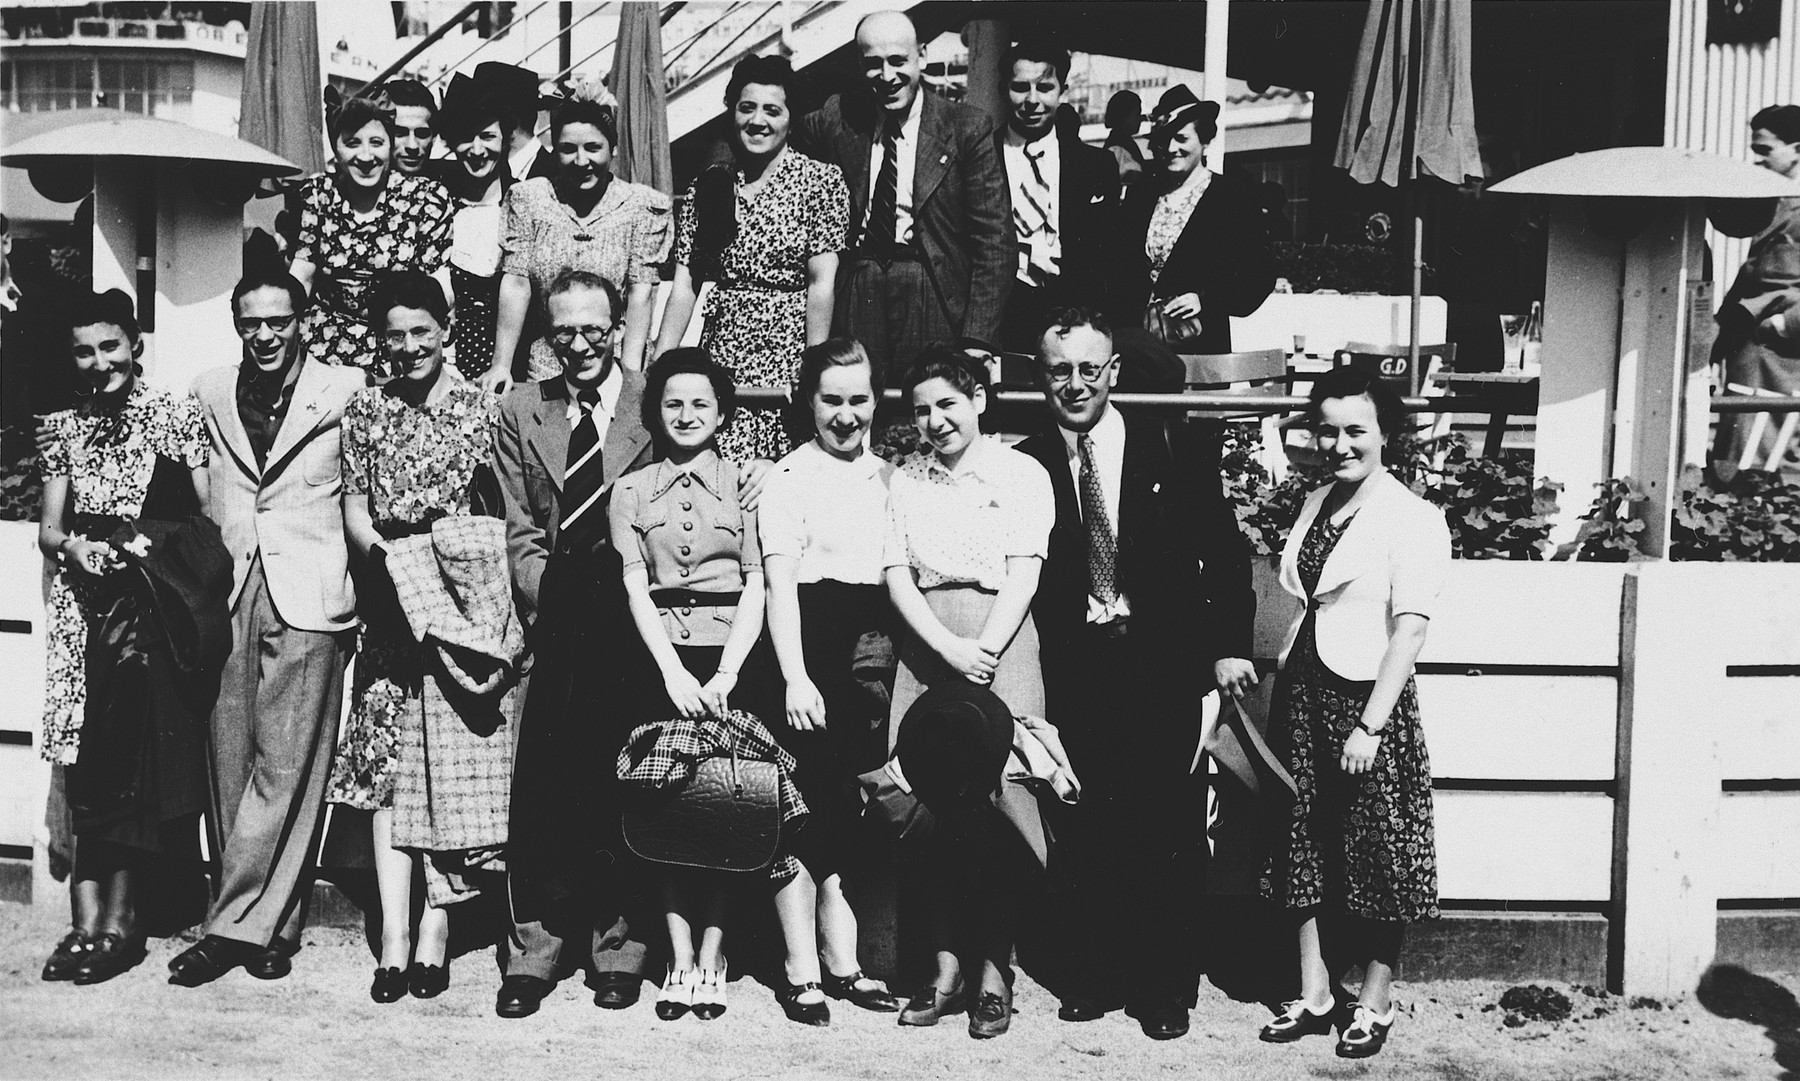 Group portrait of young men and women in front of an outdoor cafe in Luxembourg.  Among those pictured is Magdalena Nussbaum (top row, left).